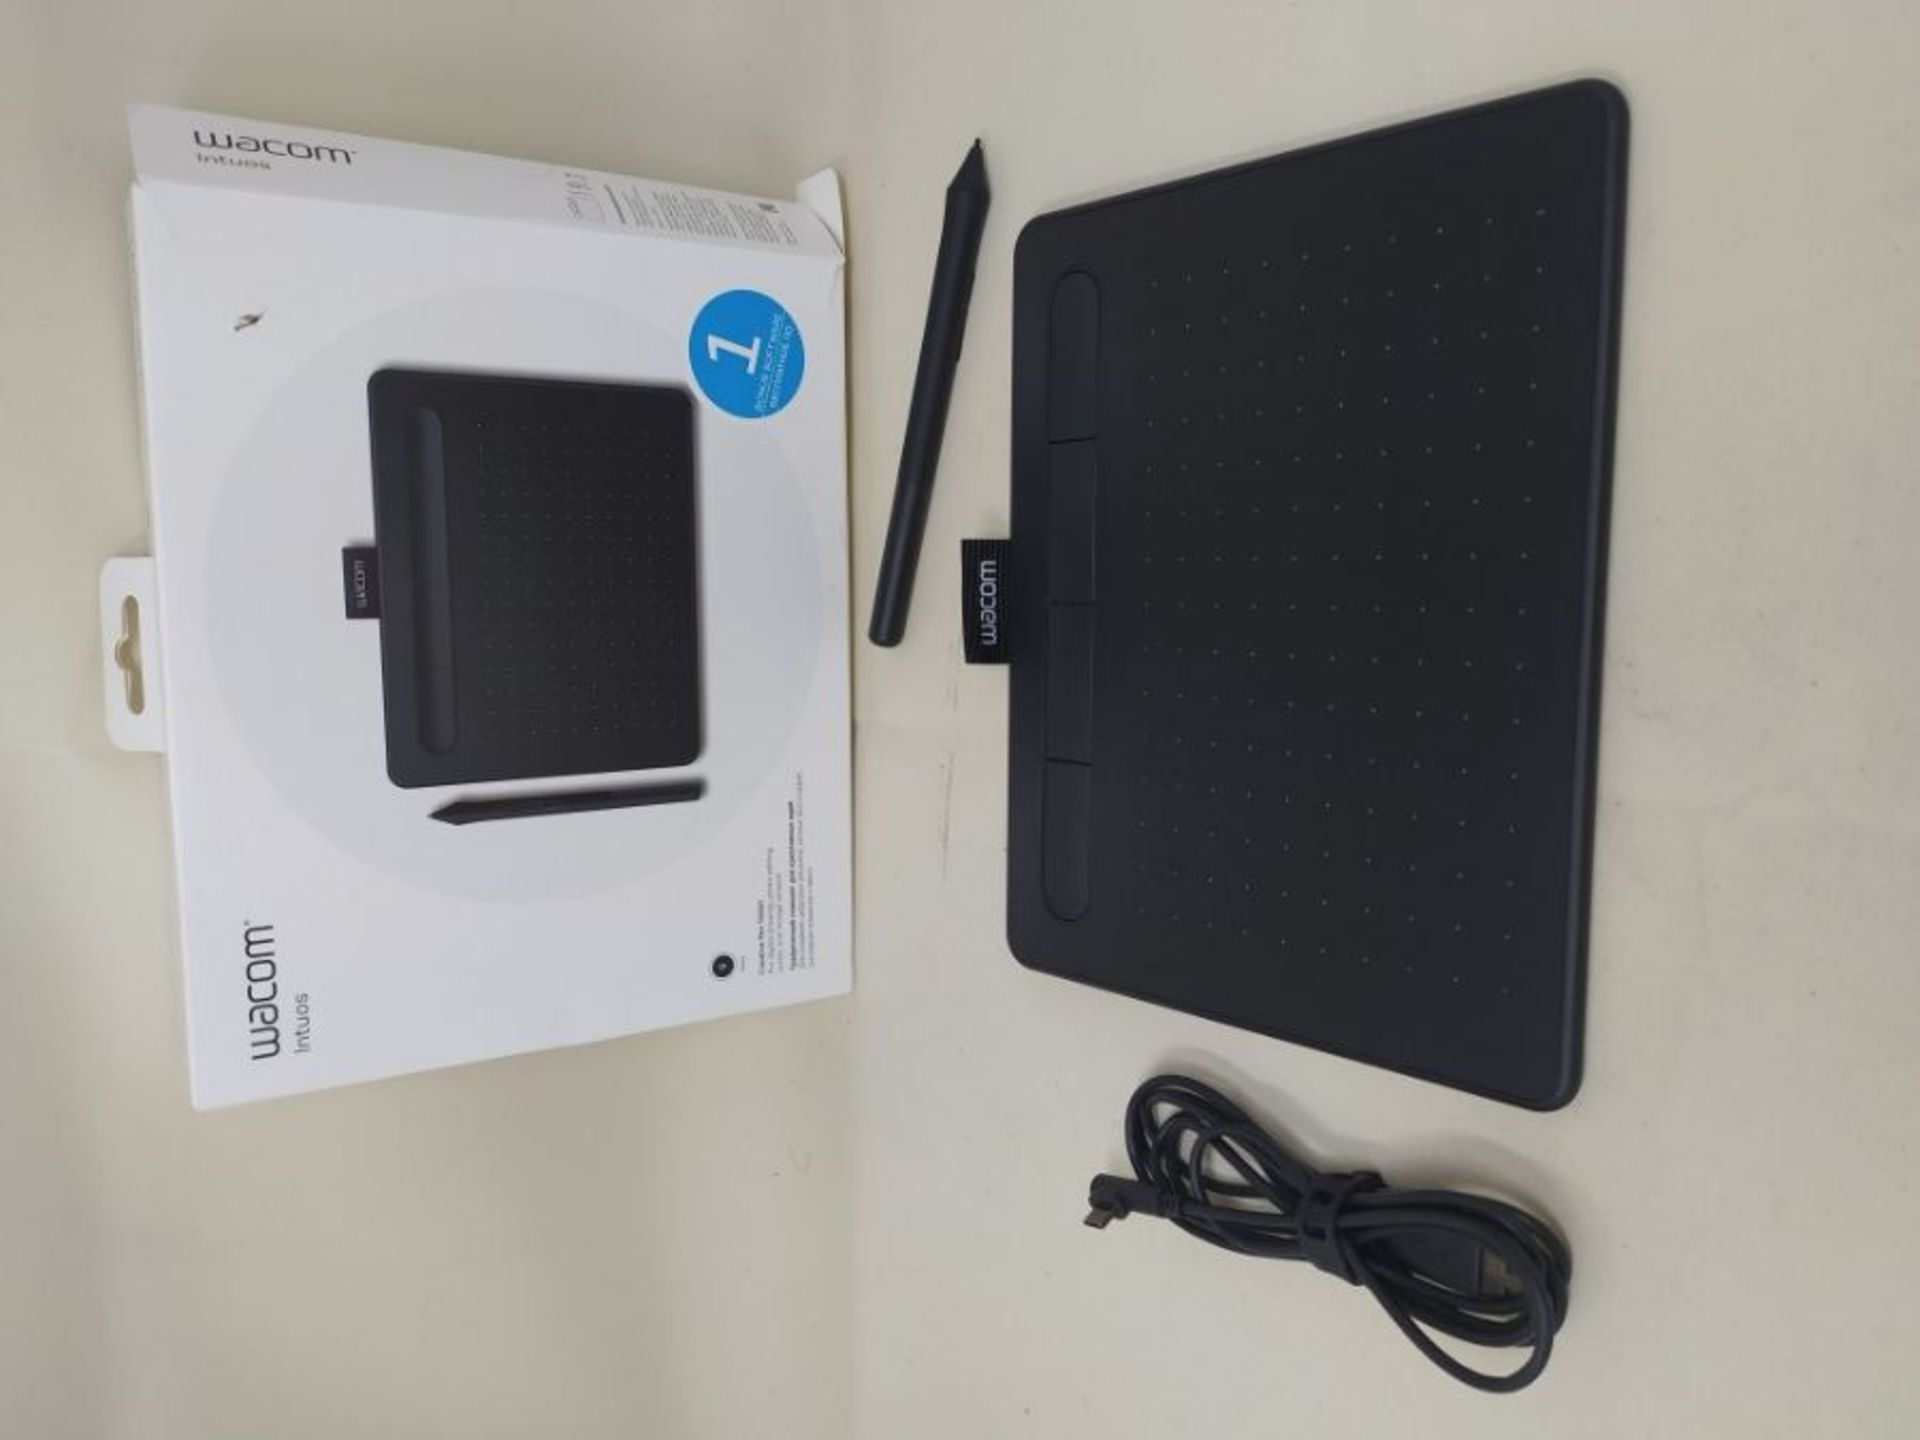 RRP £59.00 Wacom Intuos Small Black, Graphic Tablet for Painting, Sketching and Photo Retouching - Image 2 of 2